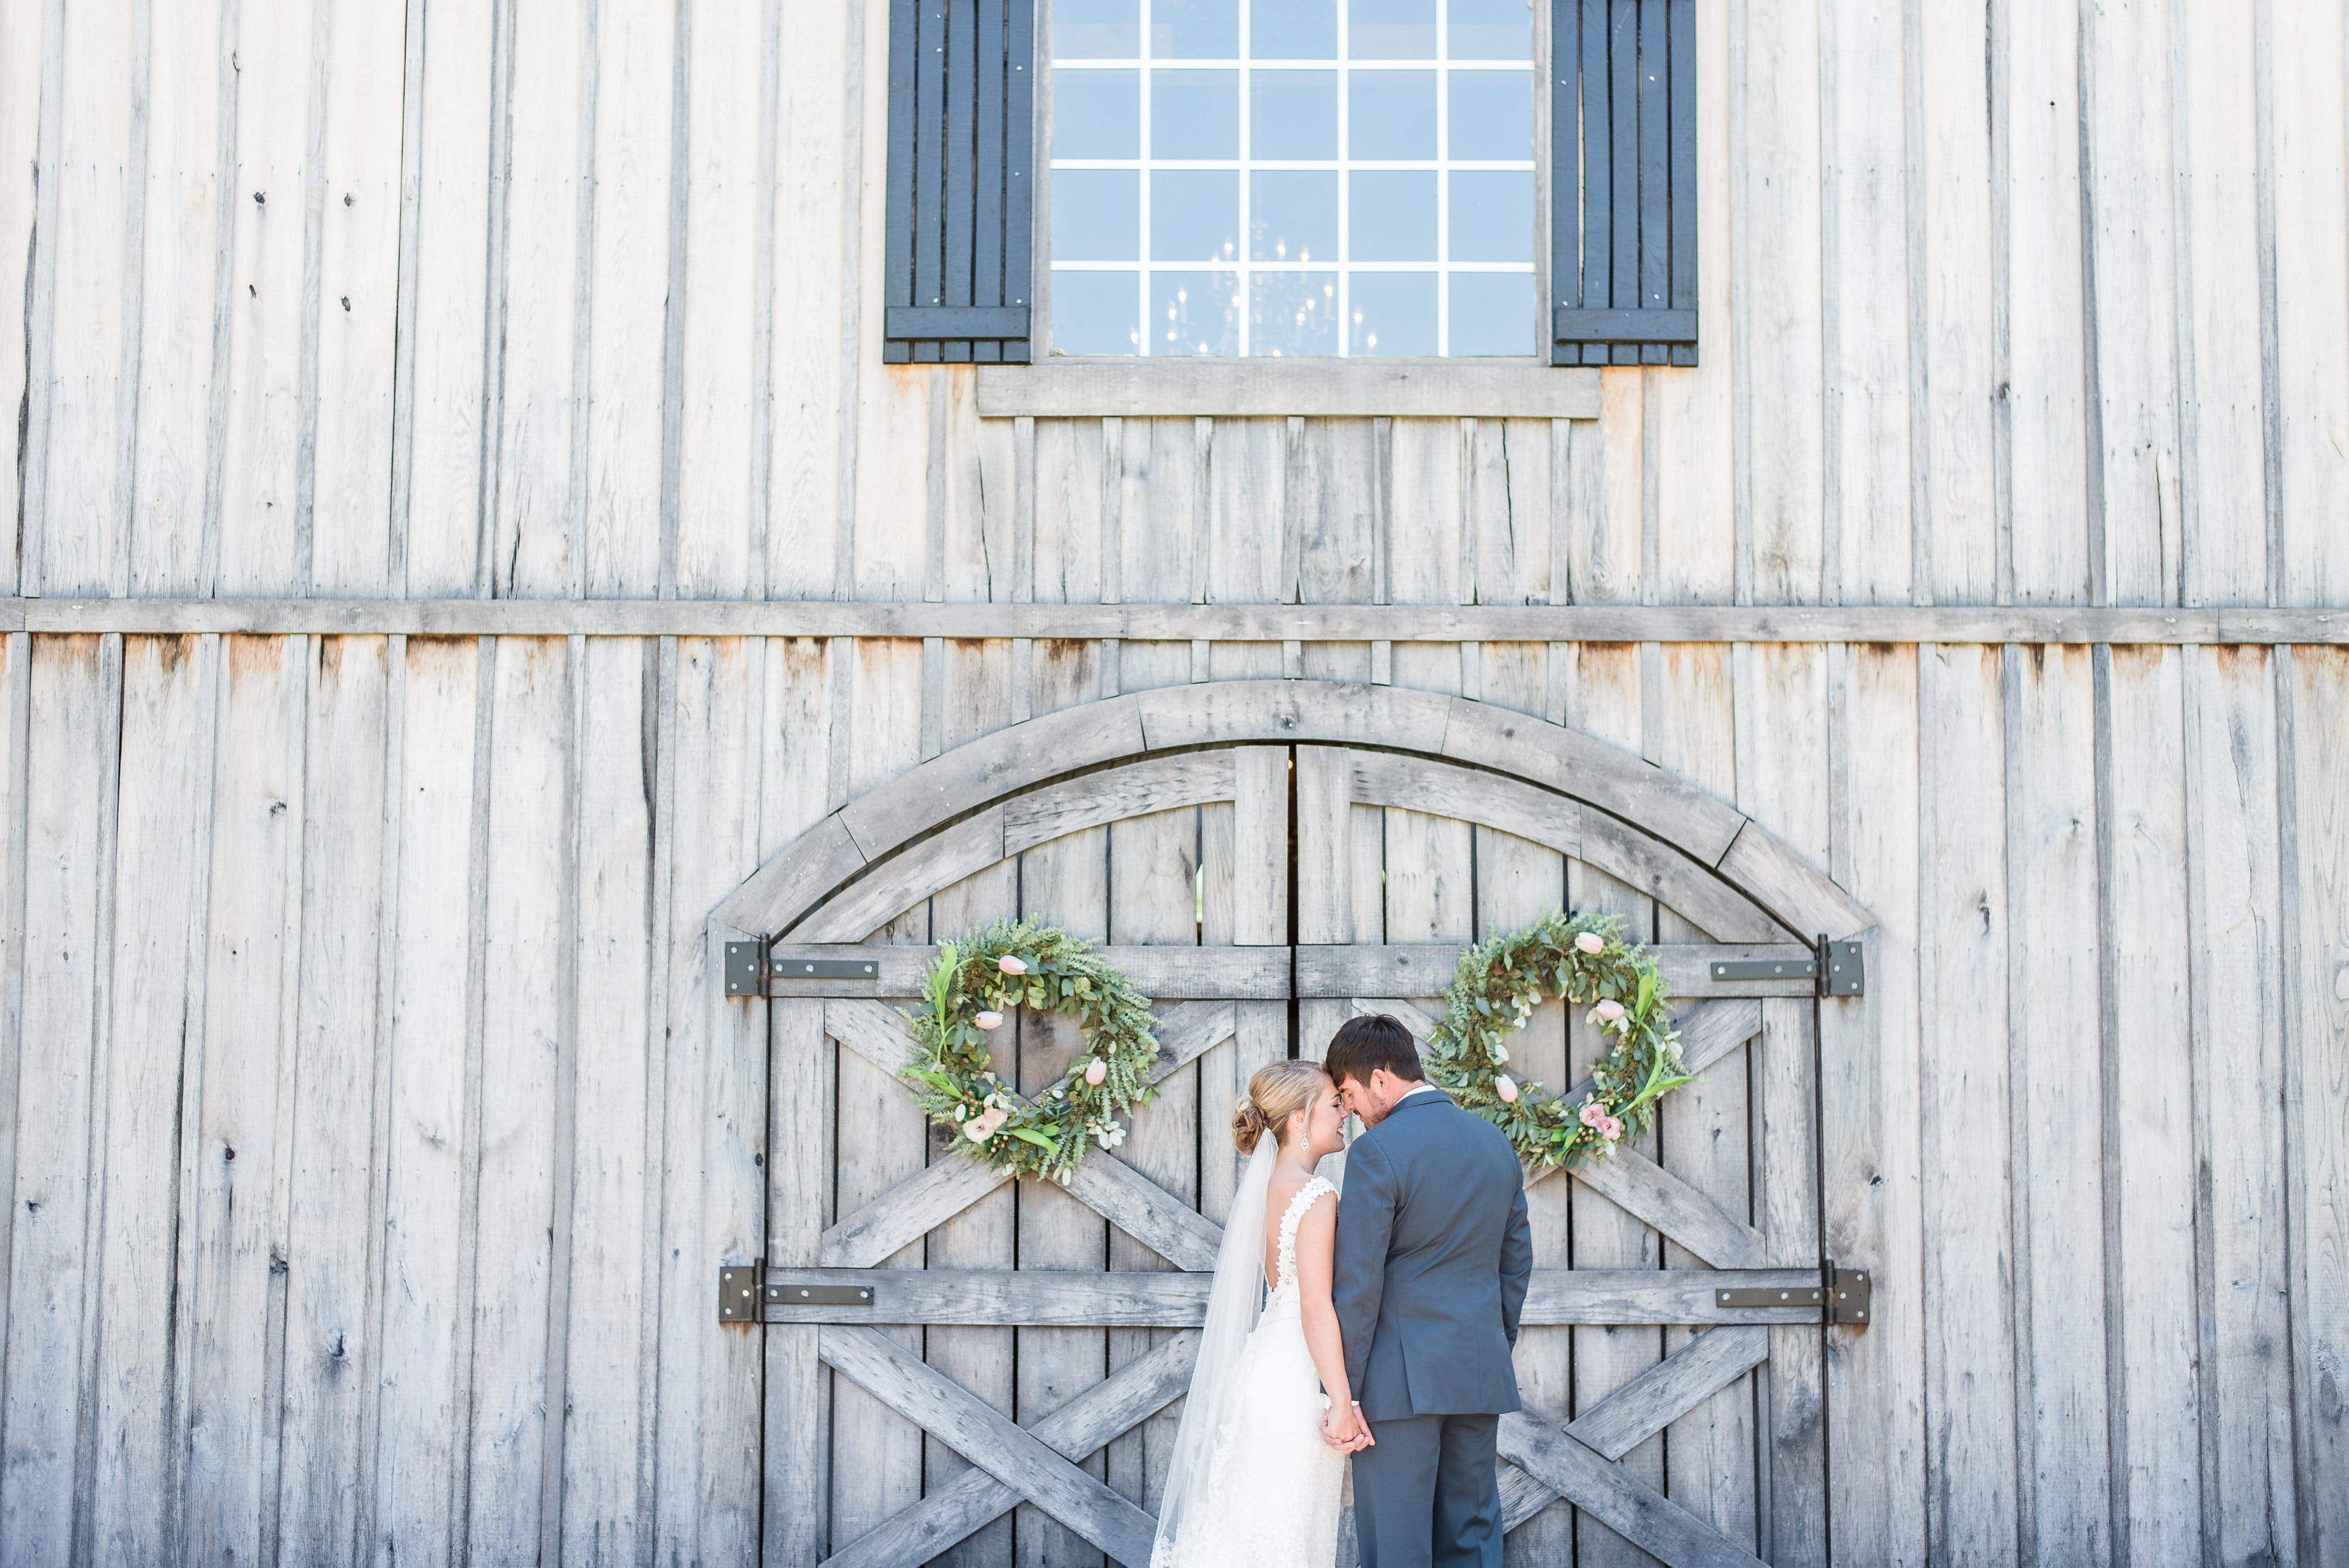 Elegant Southern Wedding - Rustic Wedding Chic